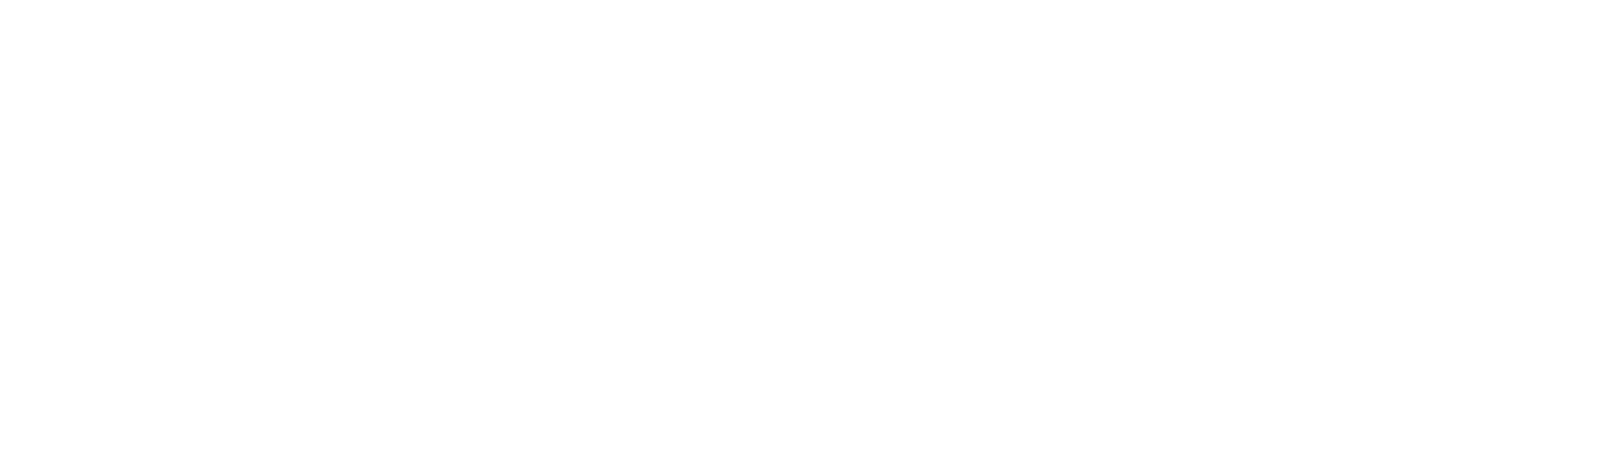 Insight and strategy white .png